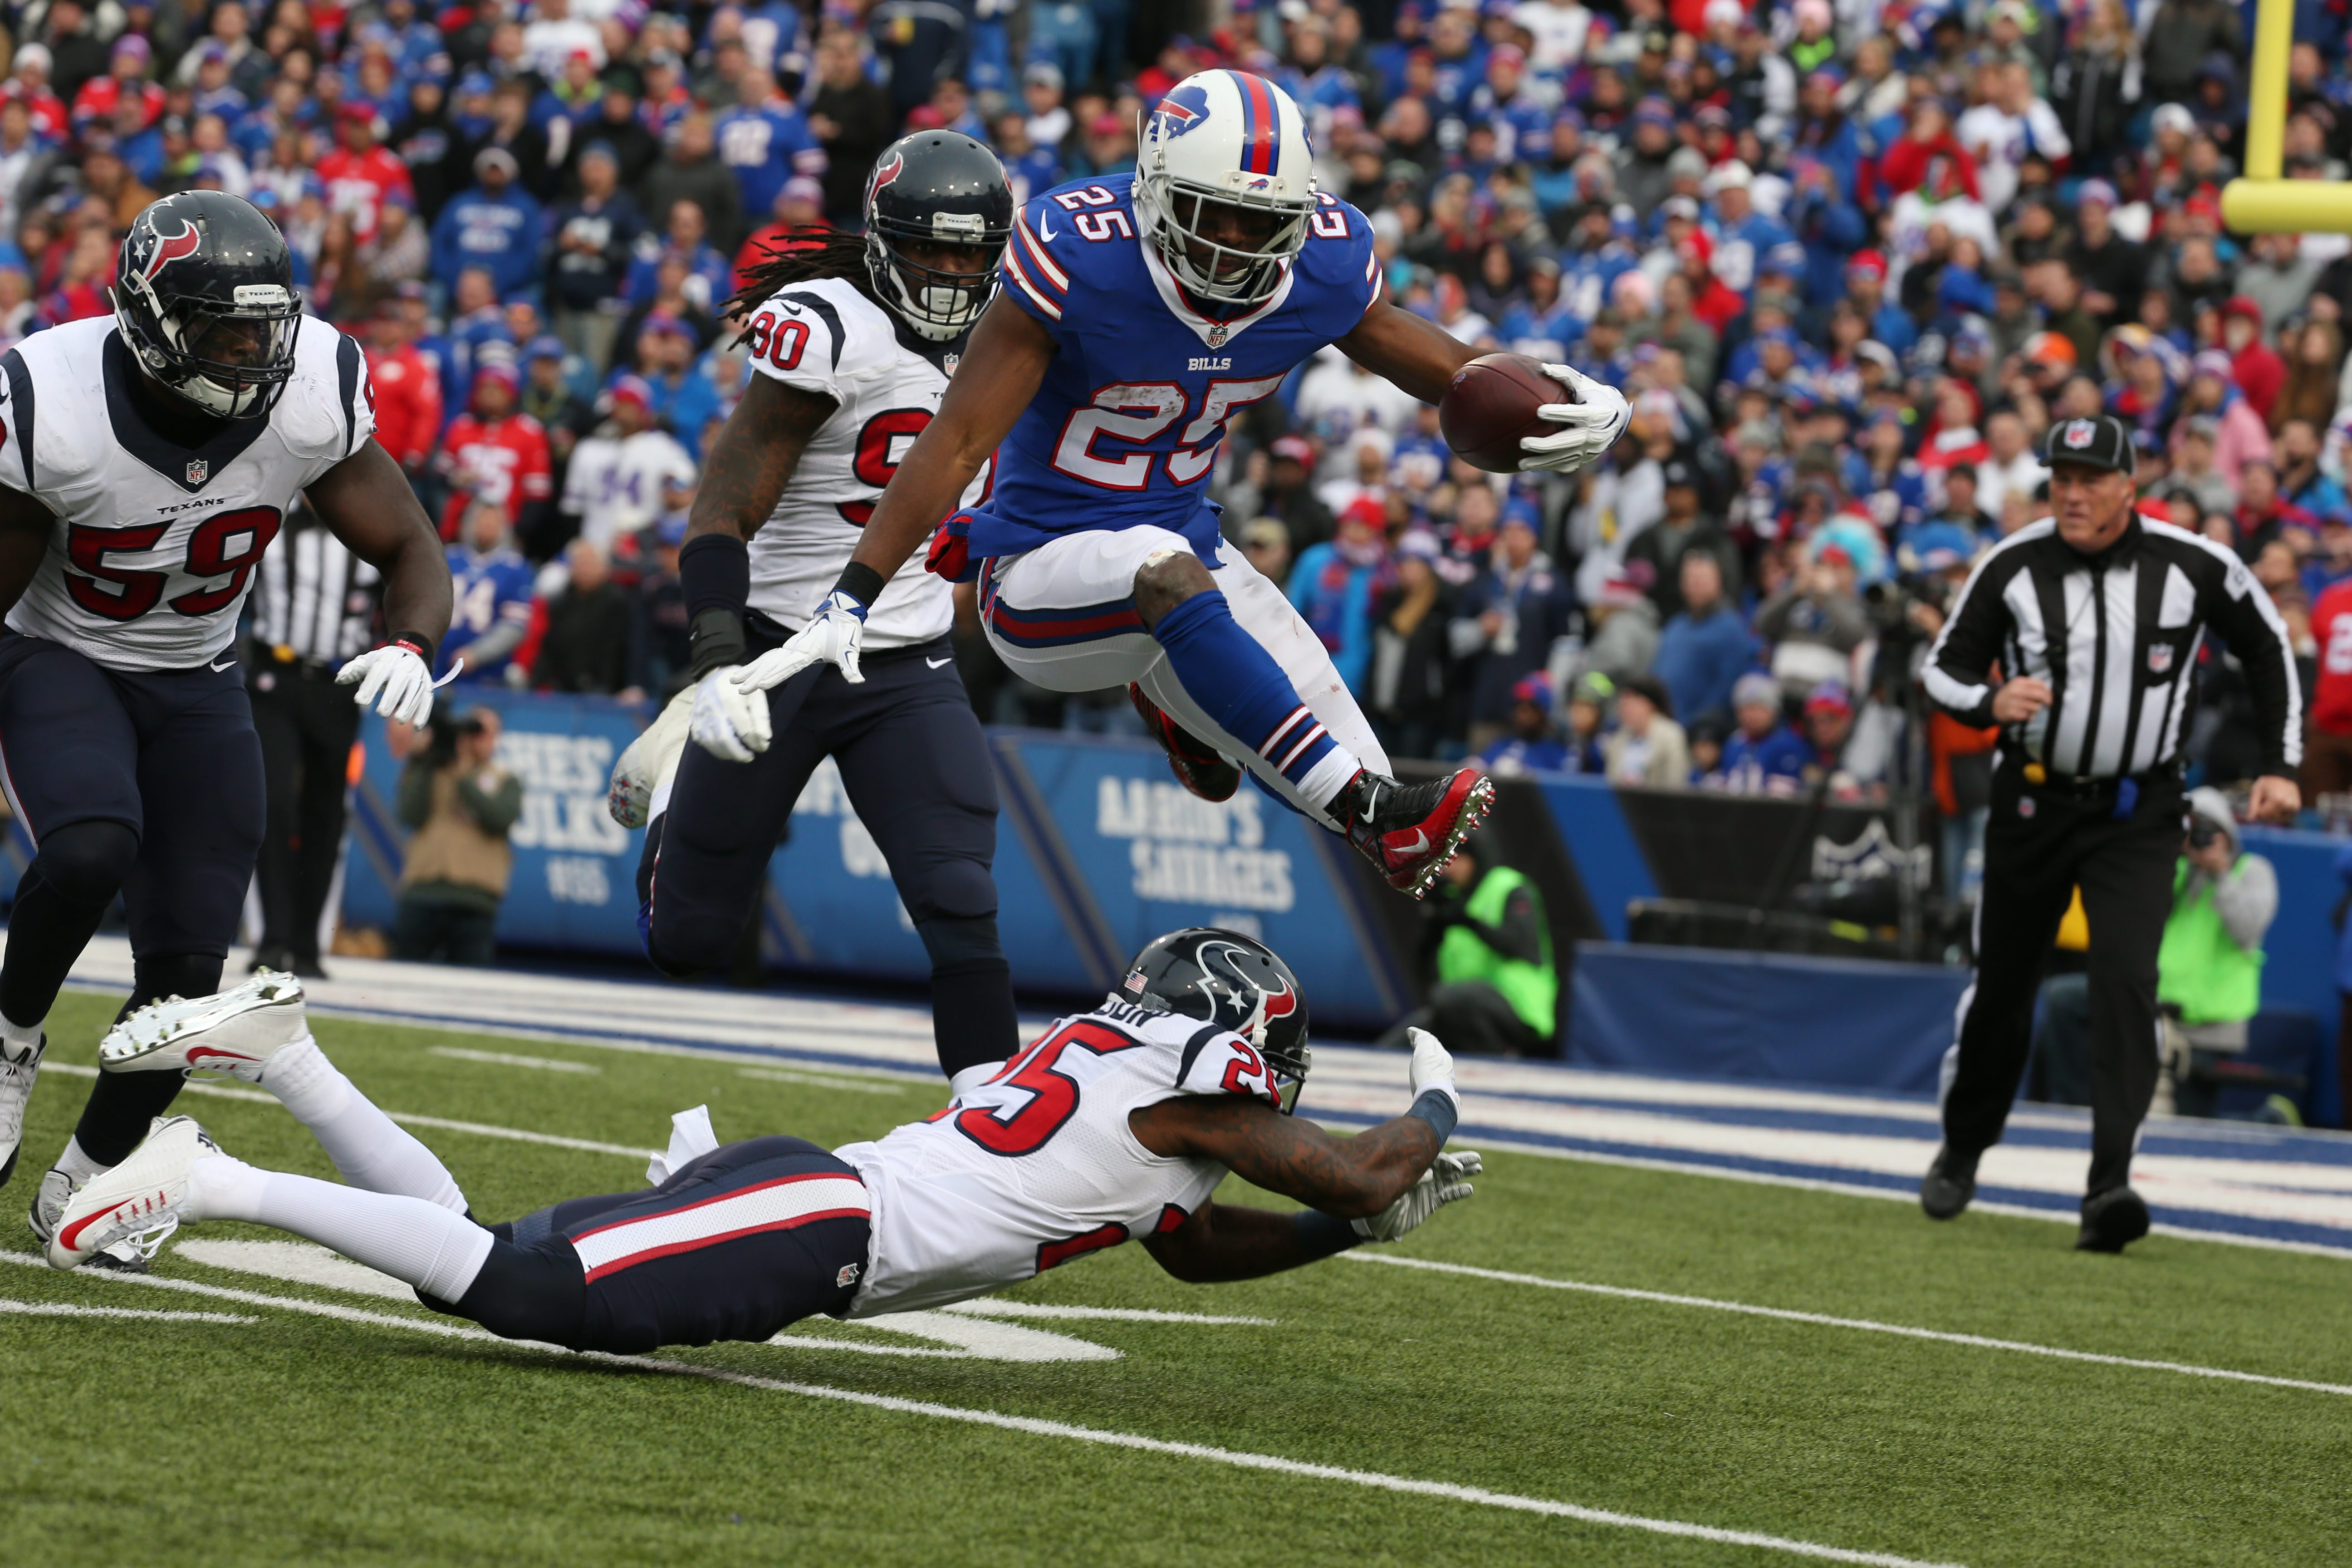 Buffalo Bills running back LeSean McCoy (25) leaps over Houston Texans cornerback Johnathan Joseph (25) during the third quarter at Ralph Wilson Stadium on Dec. 6.  (James P. McCoy/ Buffalo News)